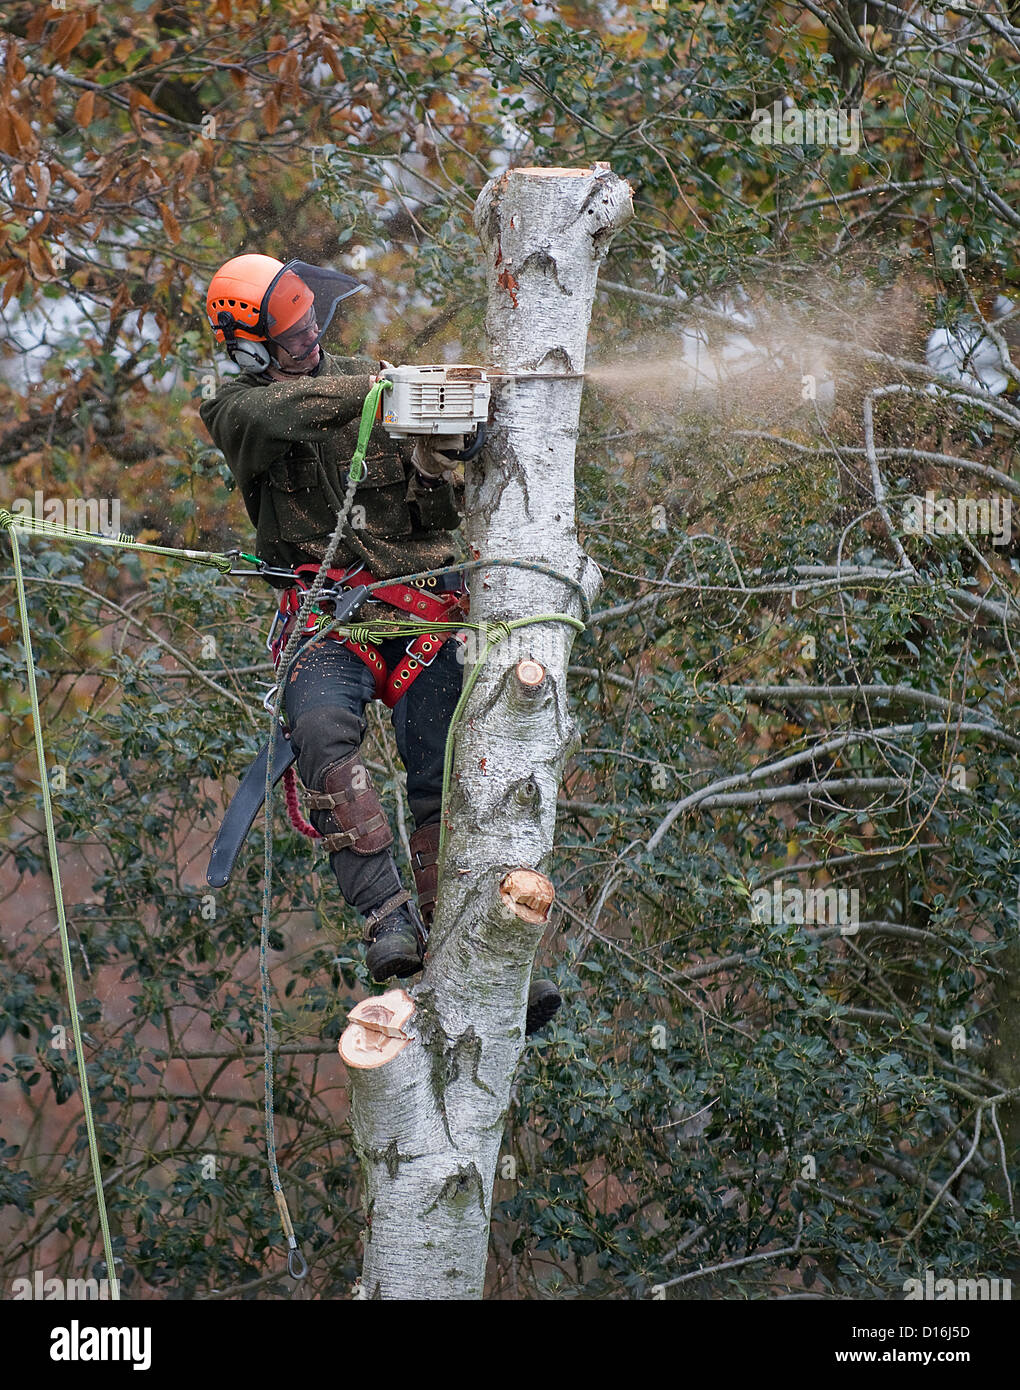 Silver Birch Tree being Felled by a Man with a Chain Saw -1 - Stock Image